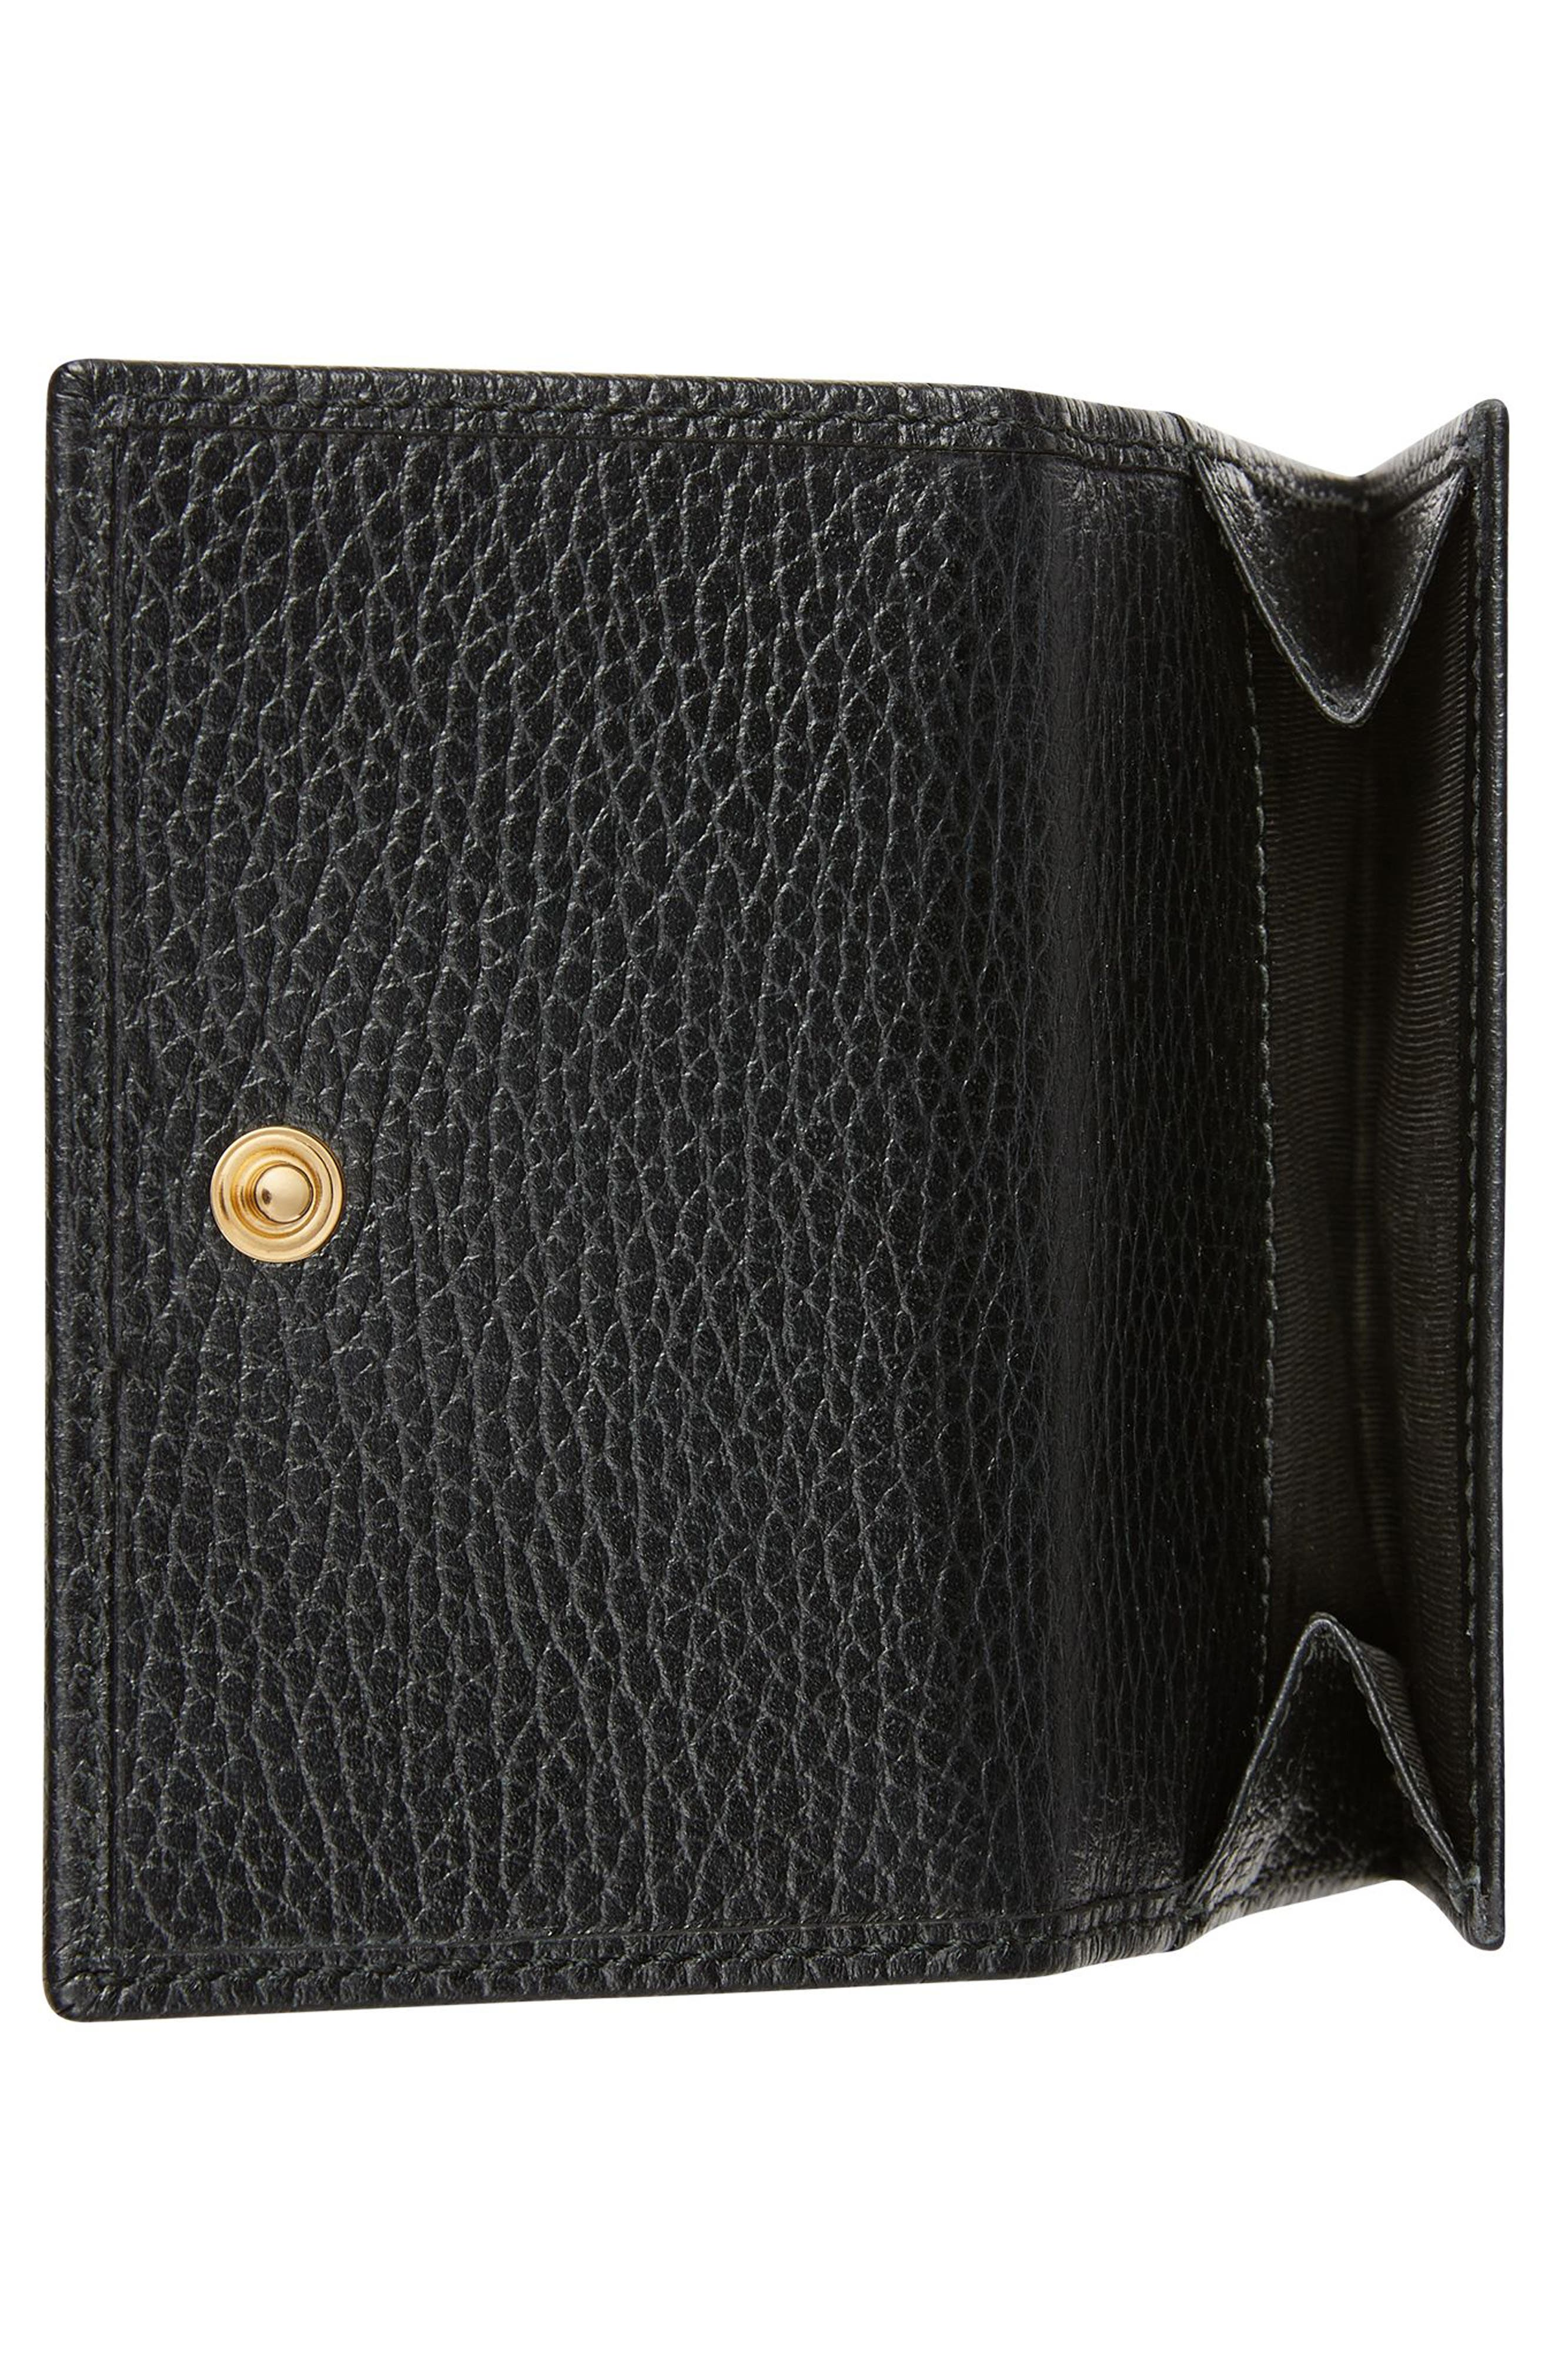 Petite Marmont Leather French Wallet,                             Alternate thumbnail 2, color,                             NERO